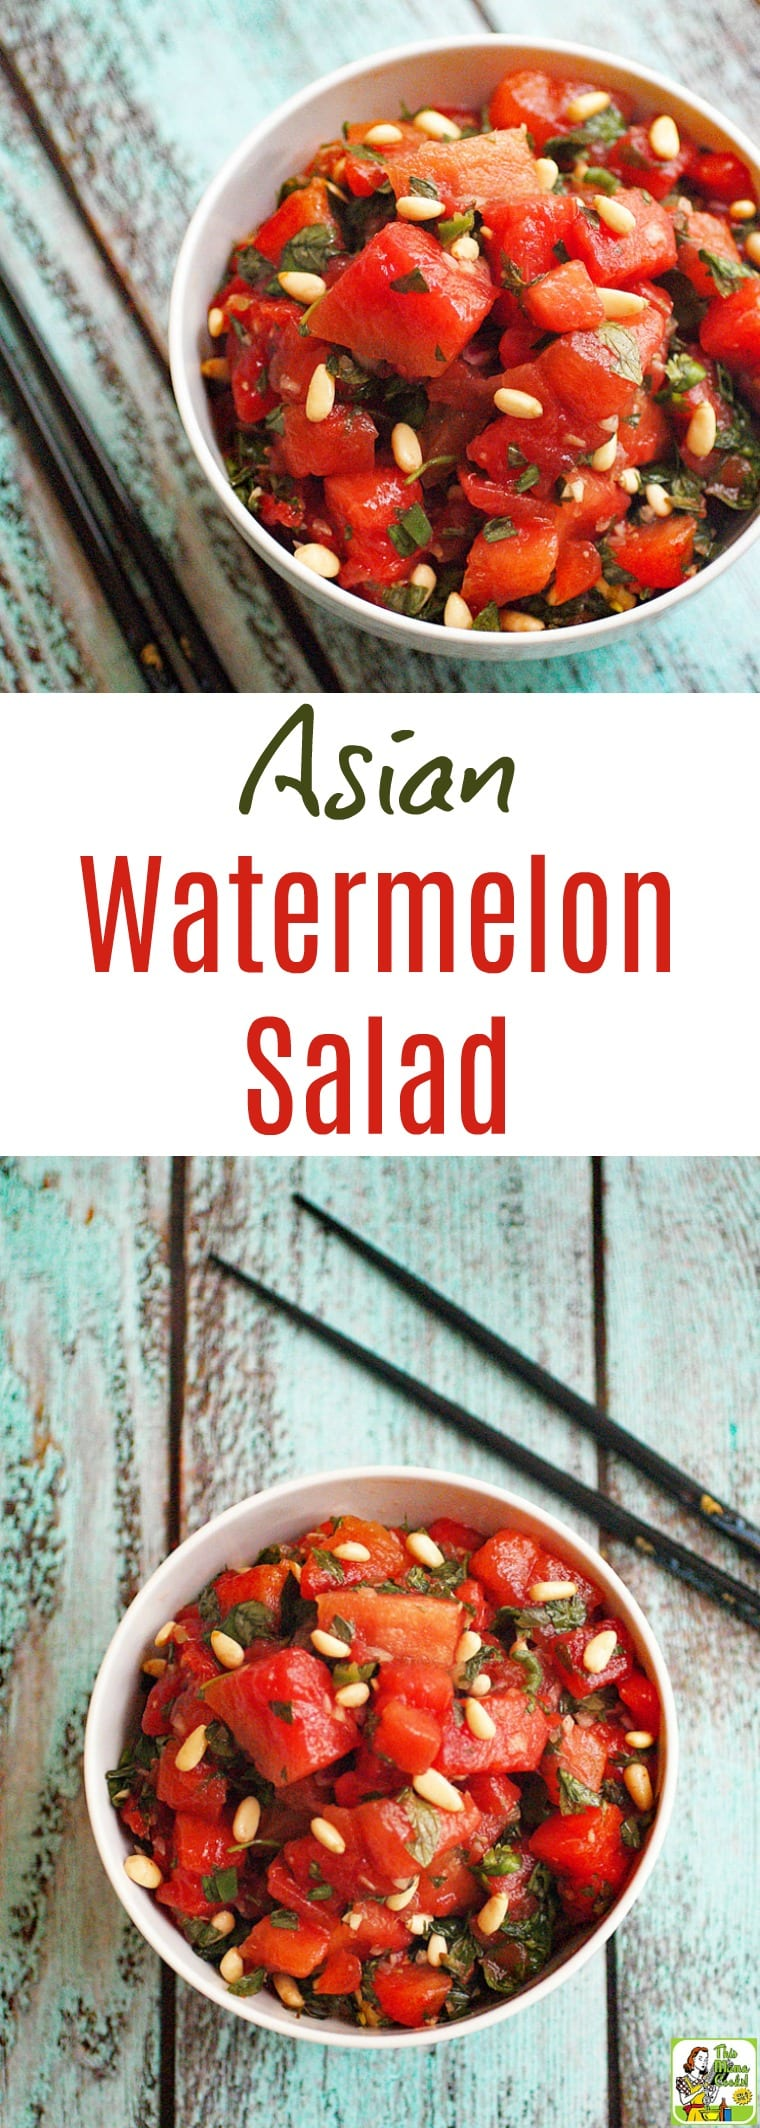 Looking for an easy to make and healthy watermelon salad recipe to serve at your next cookout? Click to get this Asian Watermelon Salad recipe! This Thai inspired watermelon fruit salad recipe is naturally gluten free, nut free, vegan, and vegetarian. #vegan #vegetarian #asian #watermelon #salad #easyrecipe #healthyrecipe #fruitsalad #glutenfree #nutfree